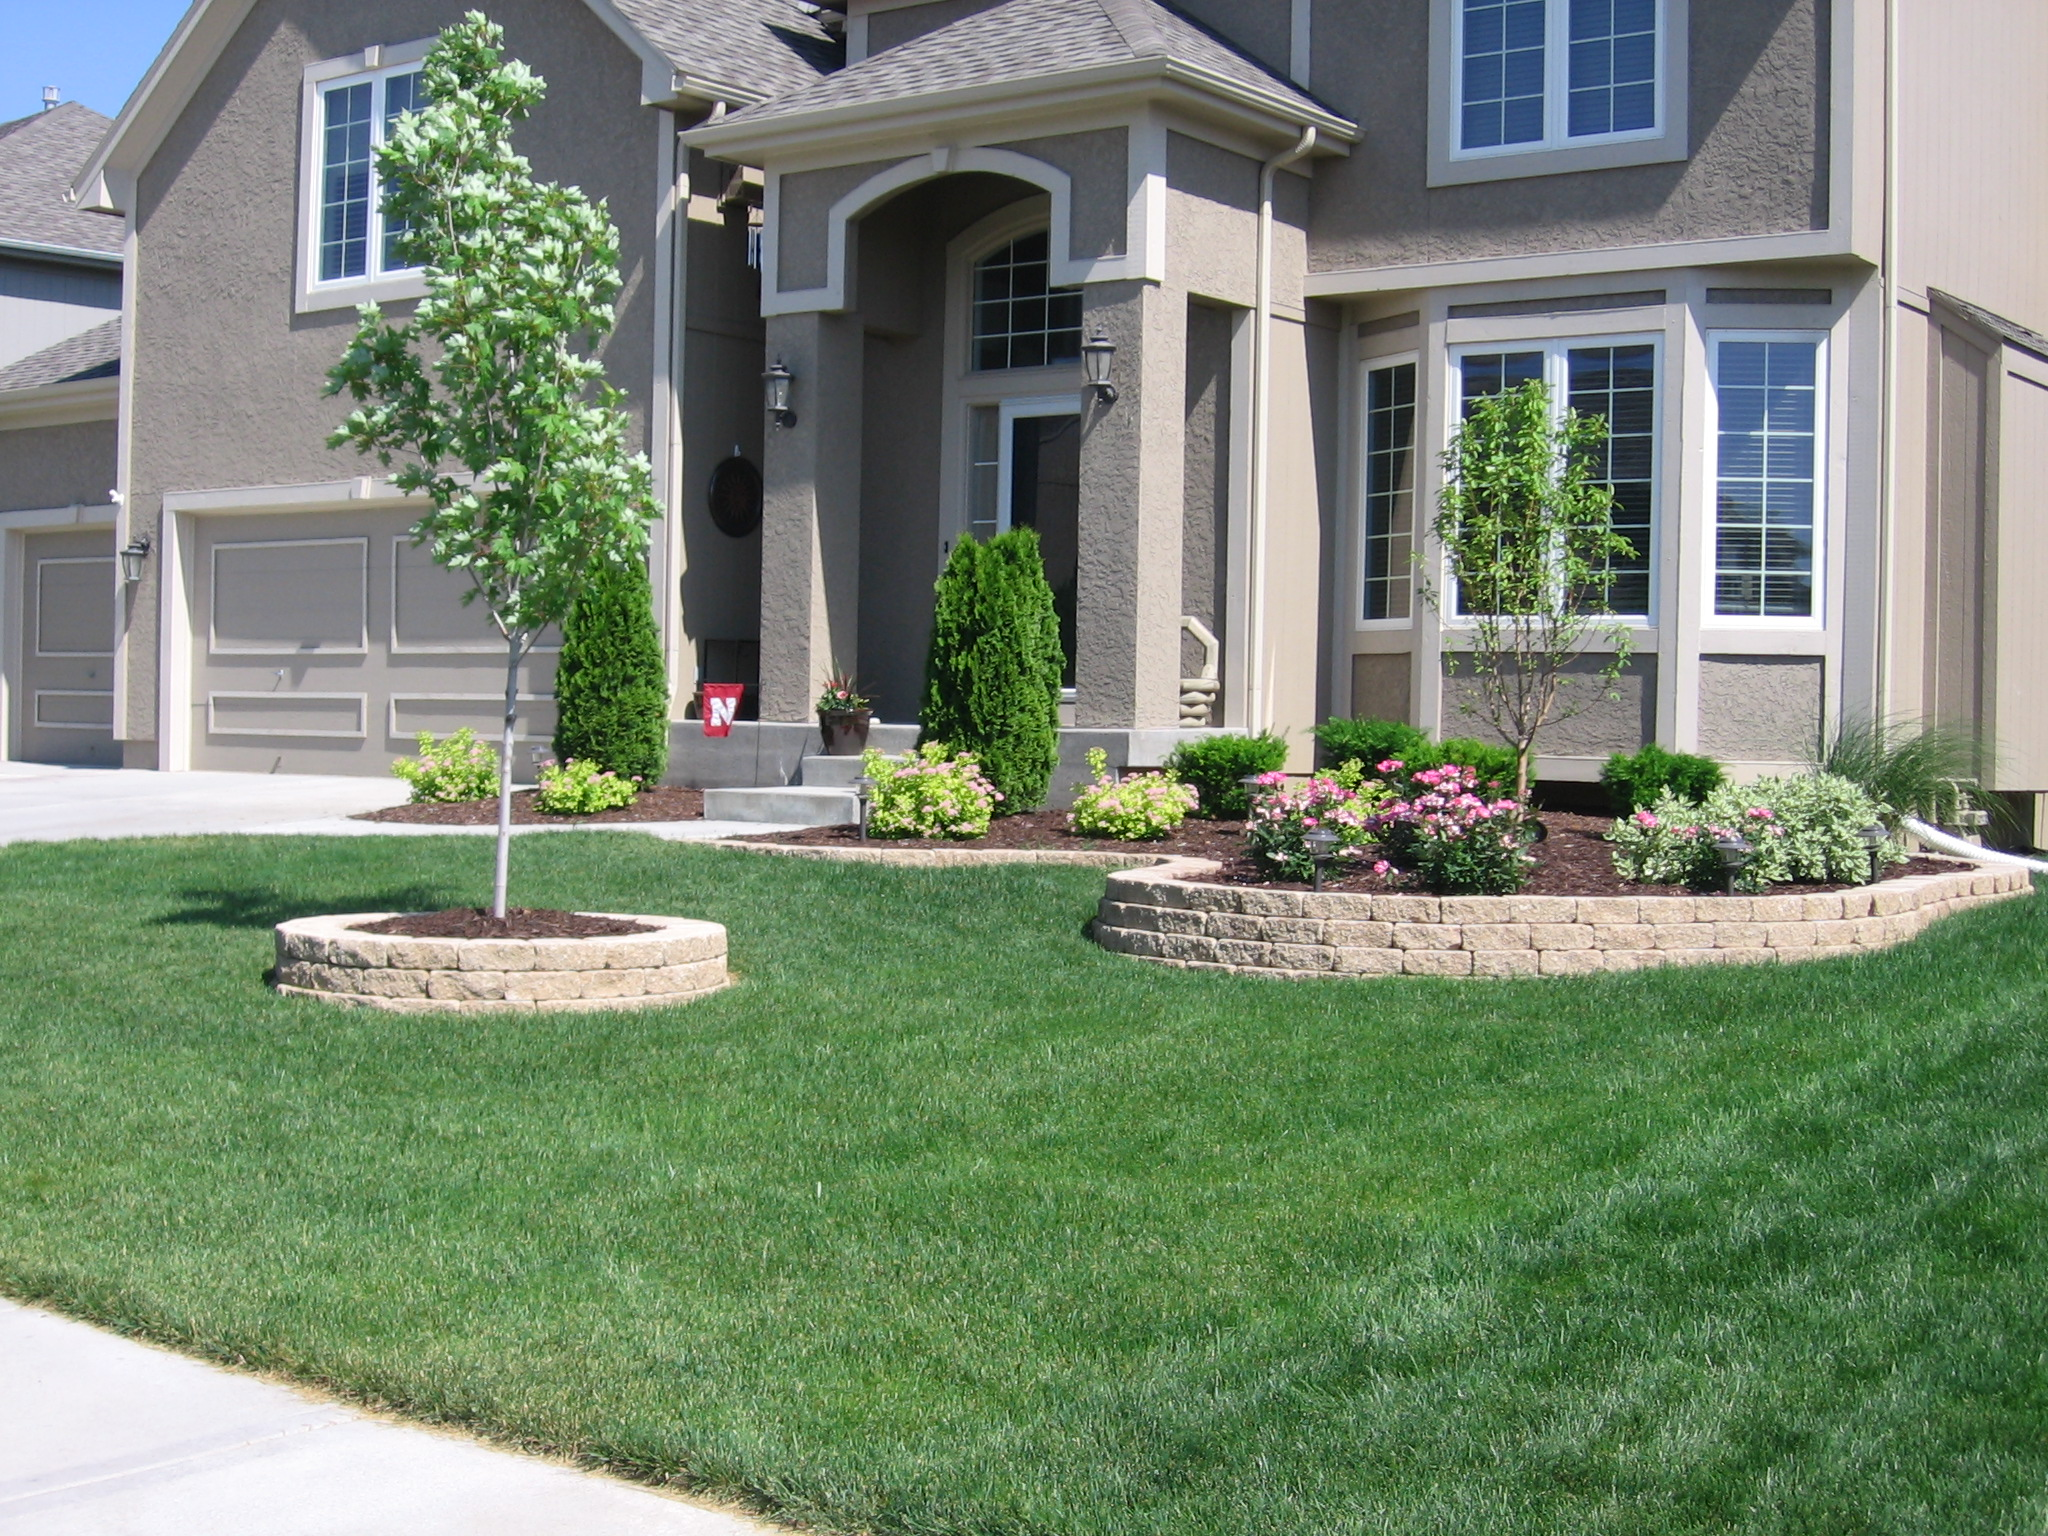 Design the appealing home landscaping at your p – CareHomeDecor